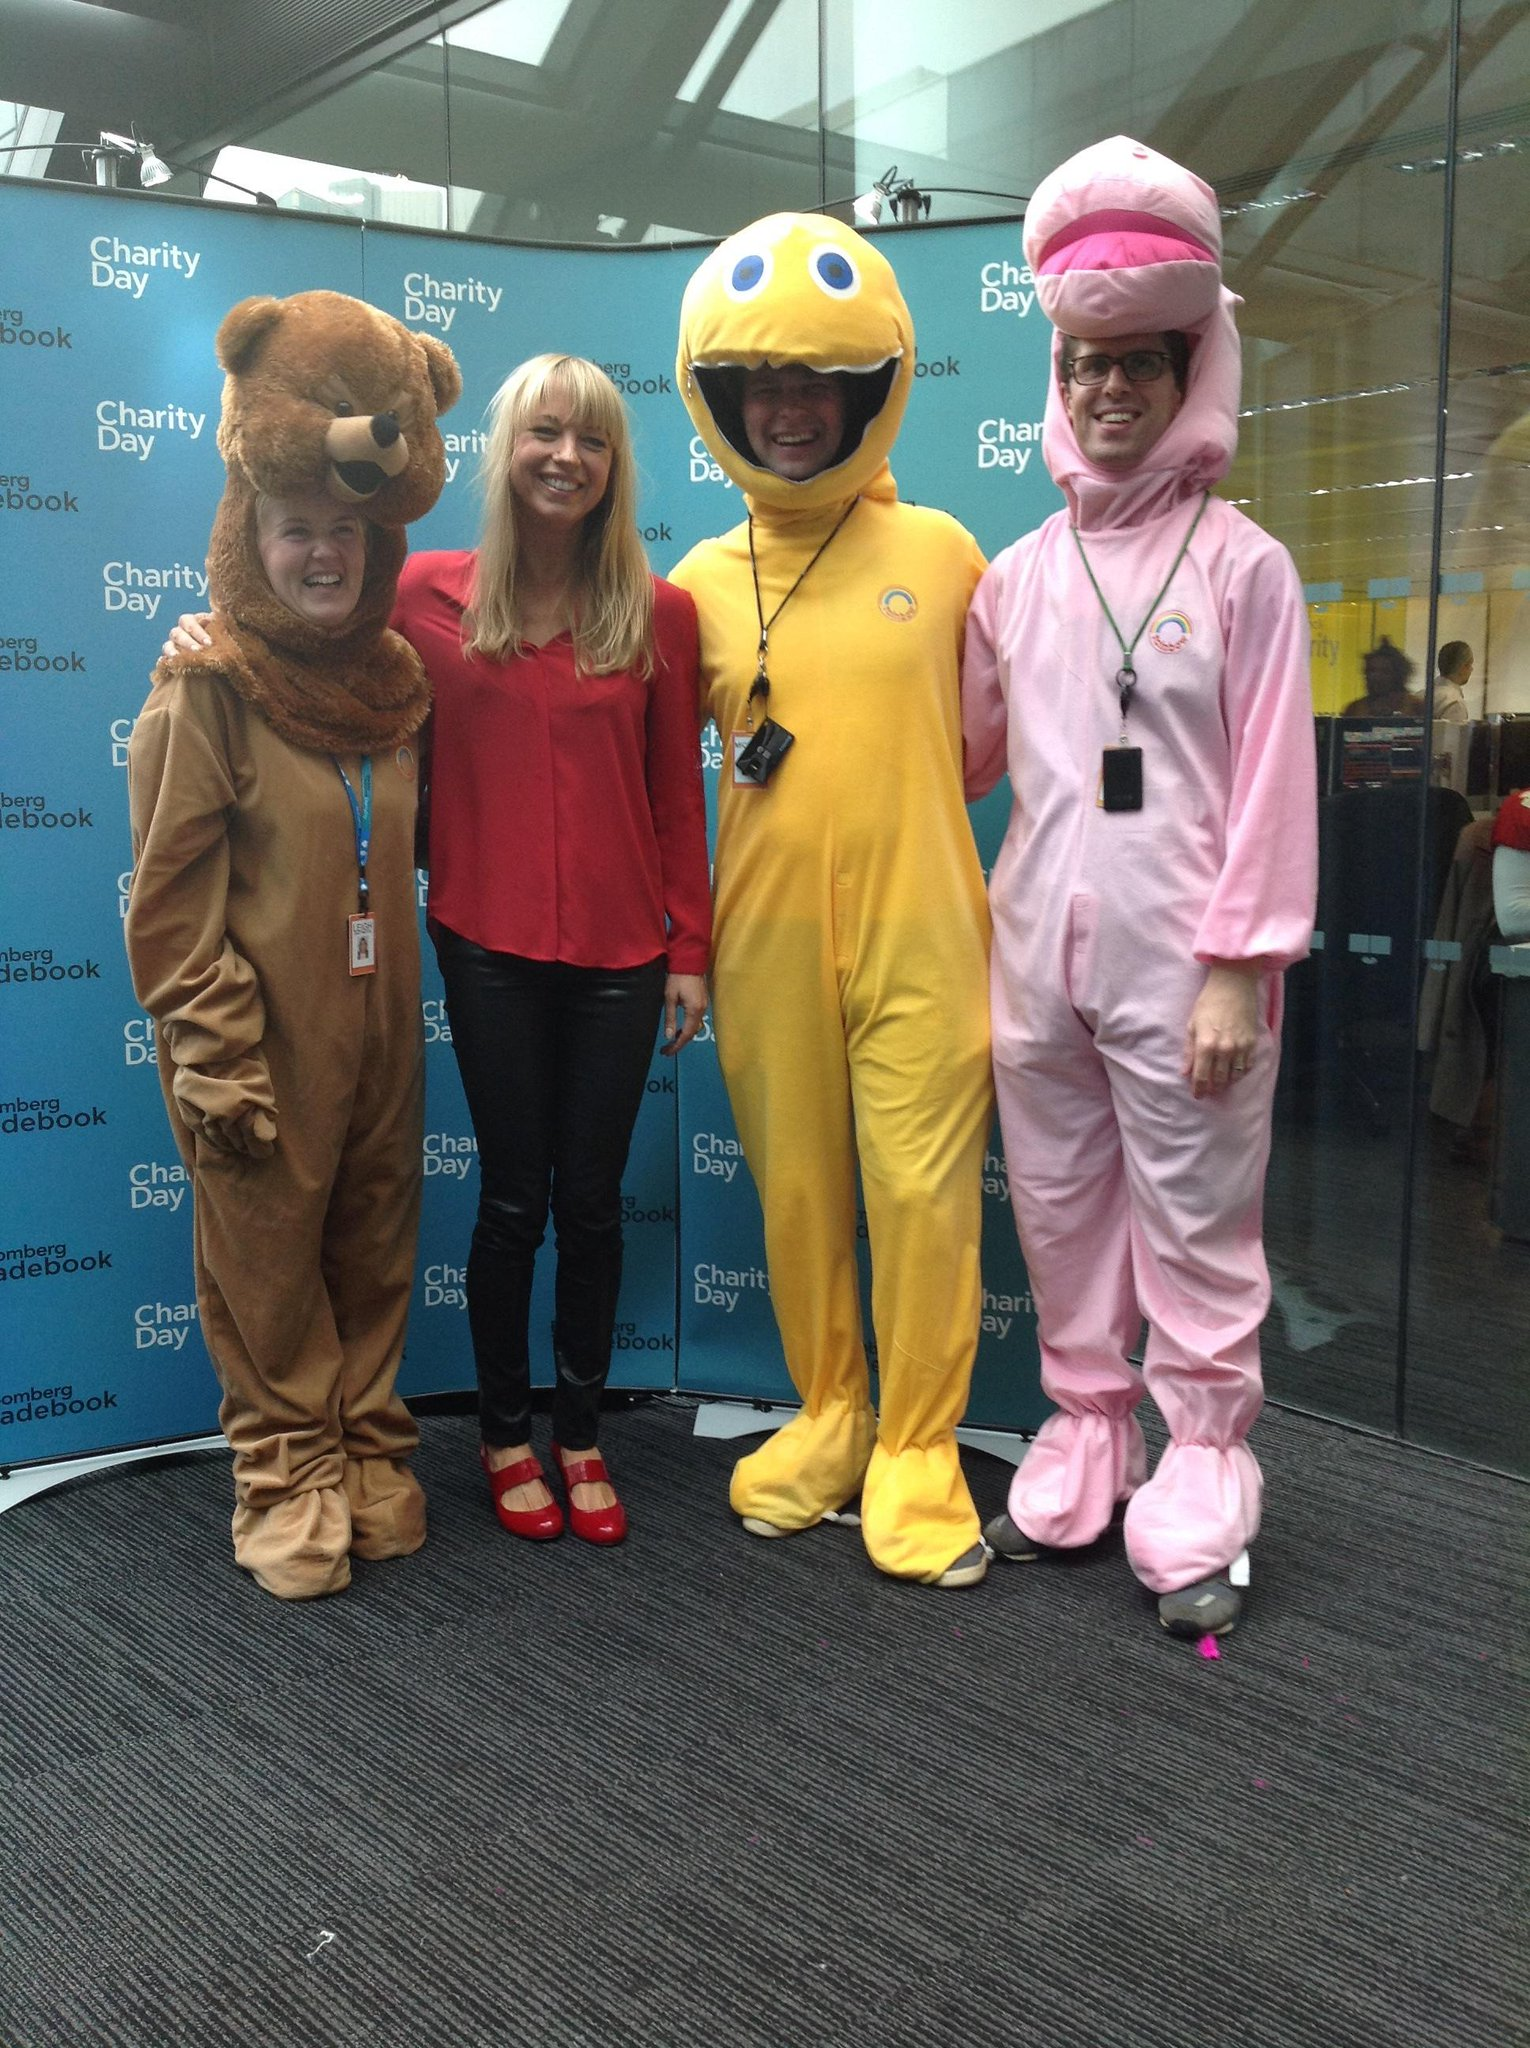 RT @BBGTradebook: Lots of onesies and @sarajcox in the midst of it all for @GreatOrmondSt #TBKCharityDay http://t.co/2oR70wLcy8